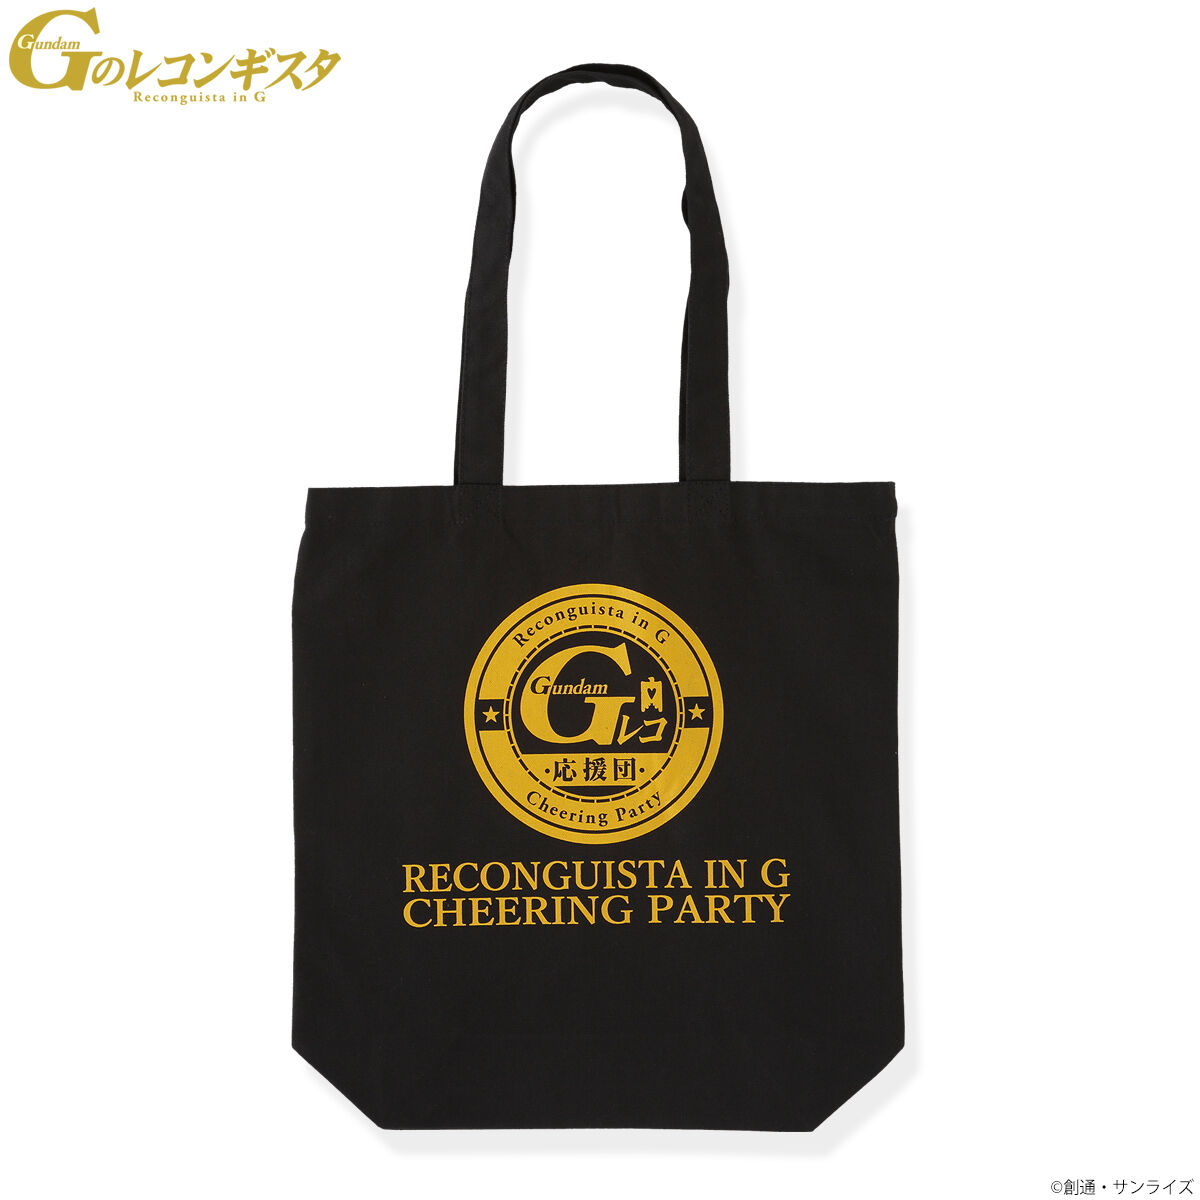 Gundam Reconguista in G Cheering Party Tote Bag—Gundam Reconguista in G